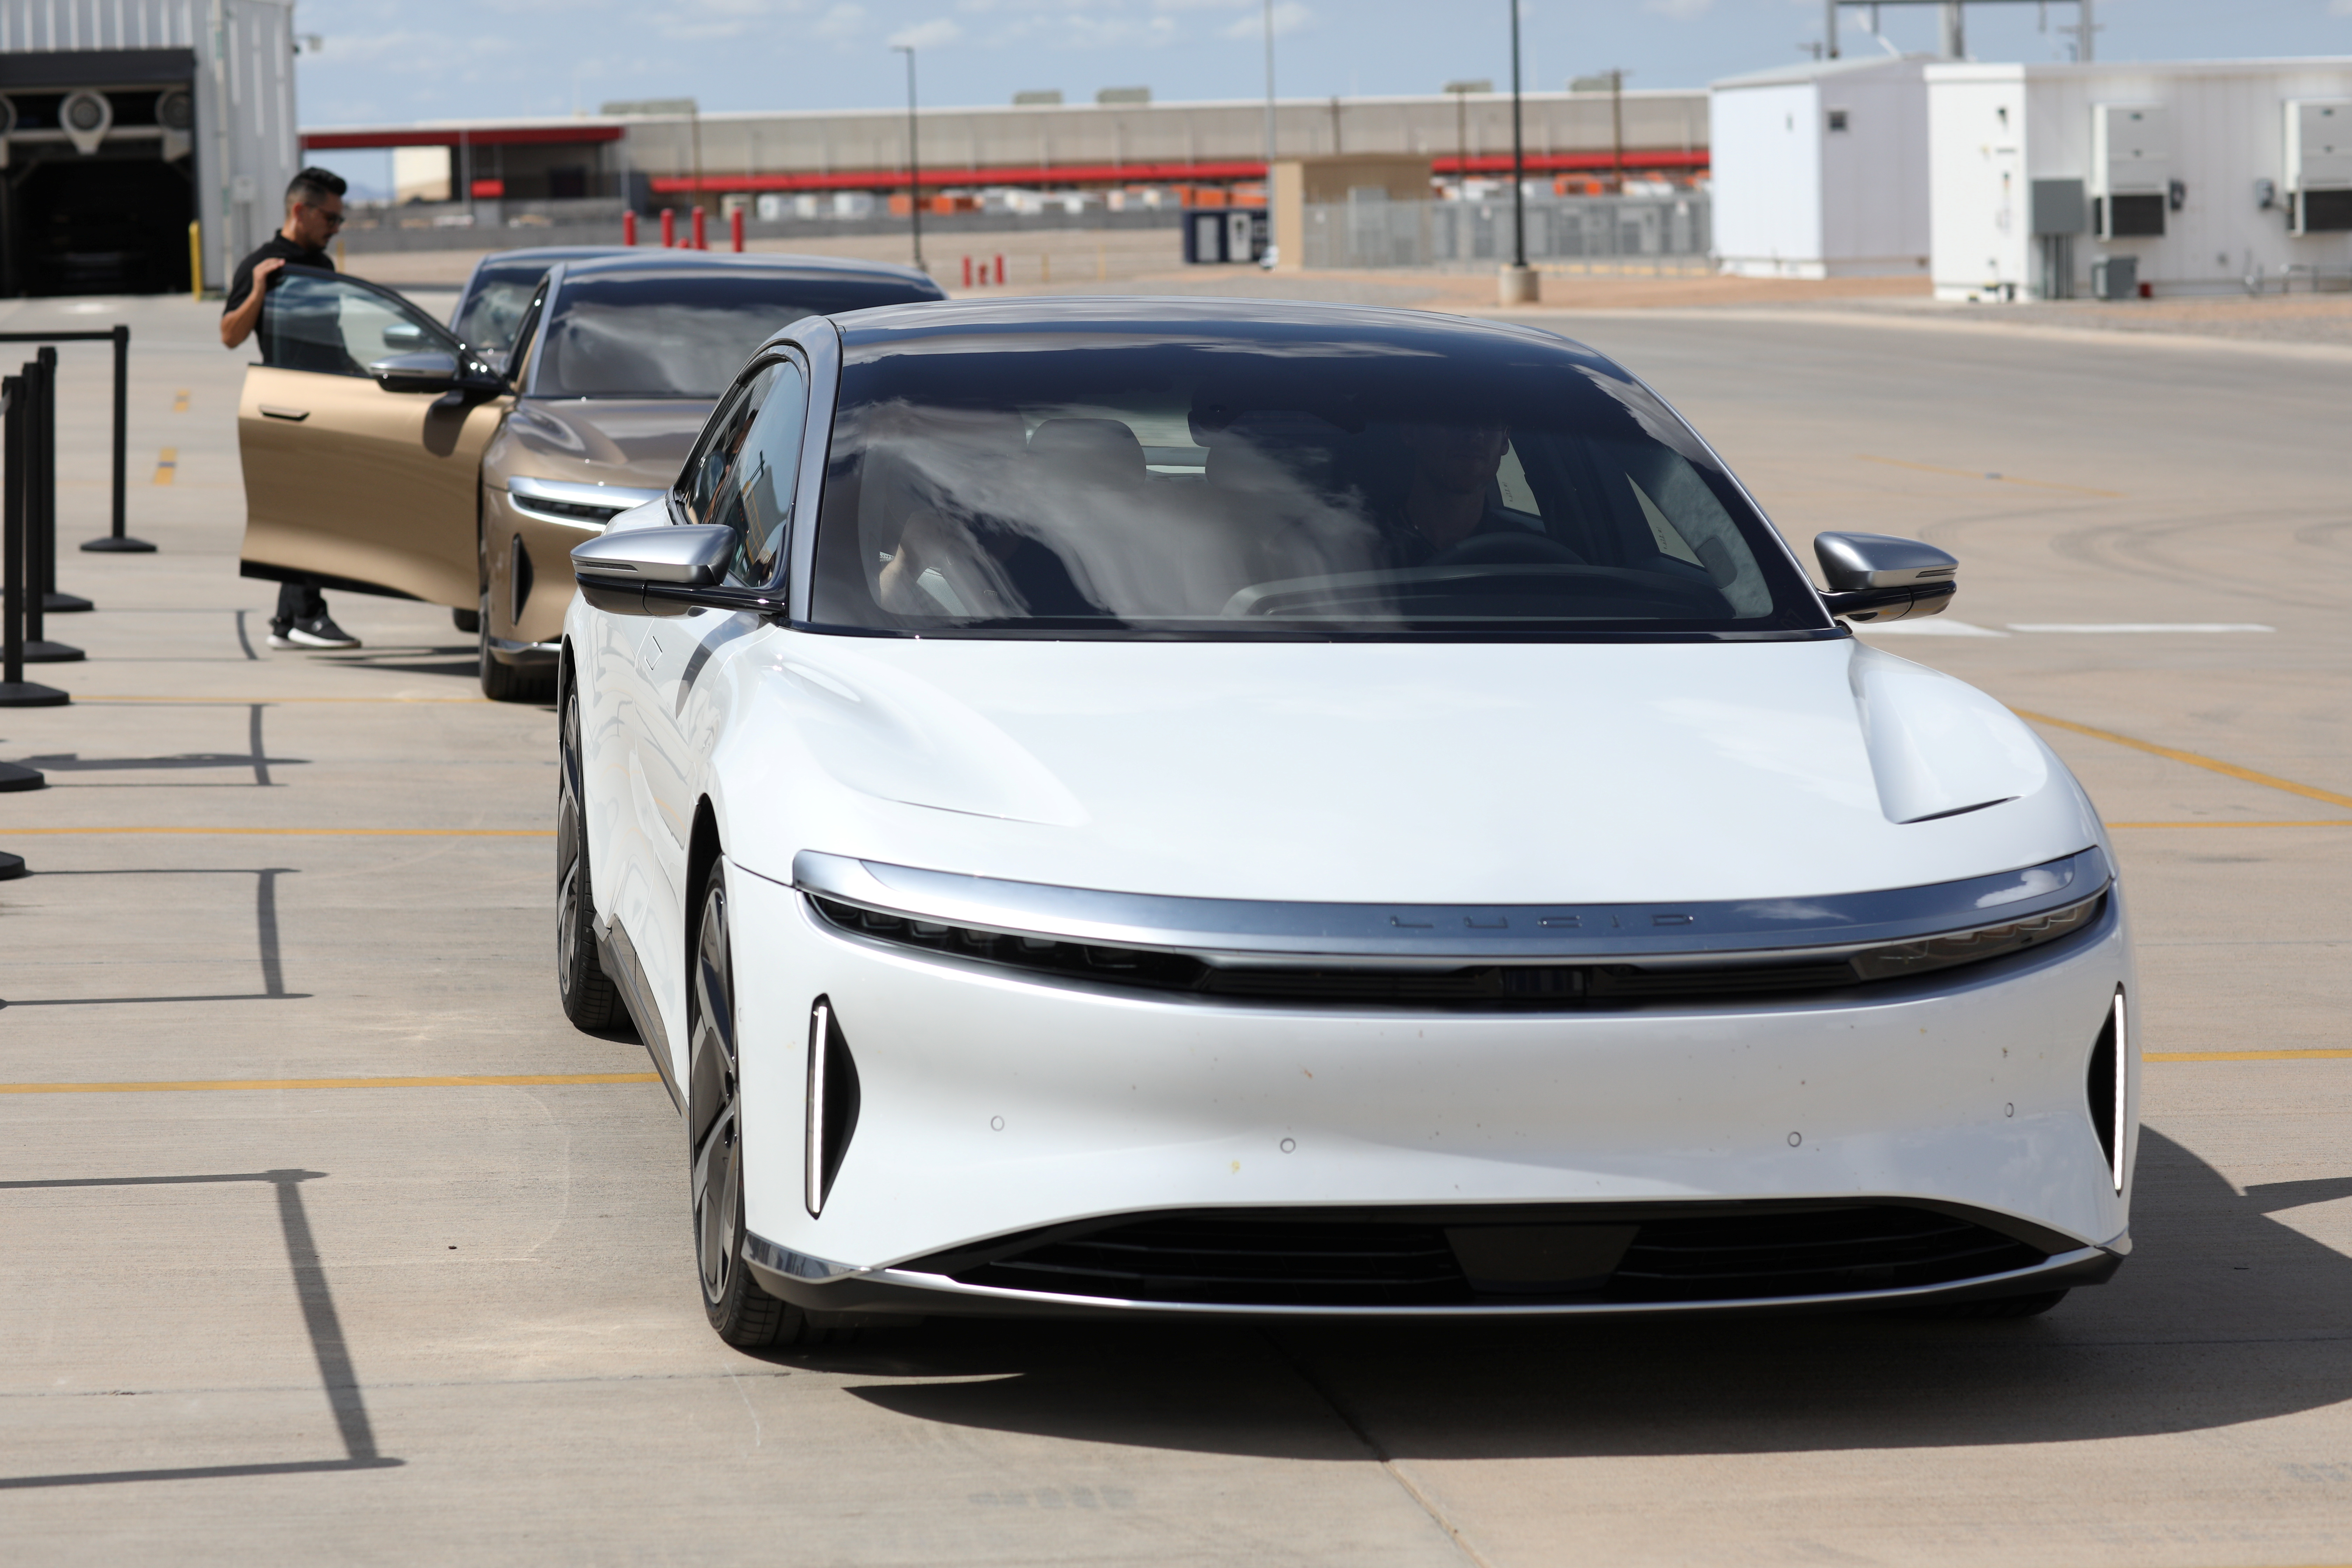 People test drive Dream Edition P and Dream Edition R electric vehicles at the Lucid Motors plant in Casa Grande, Arizona, U.S. September 28, 2021. REUTERS/Caitlin O'Hara